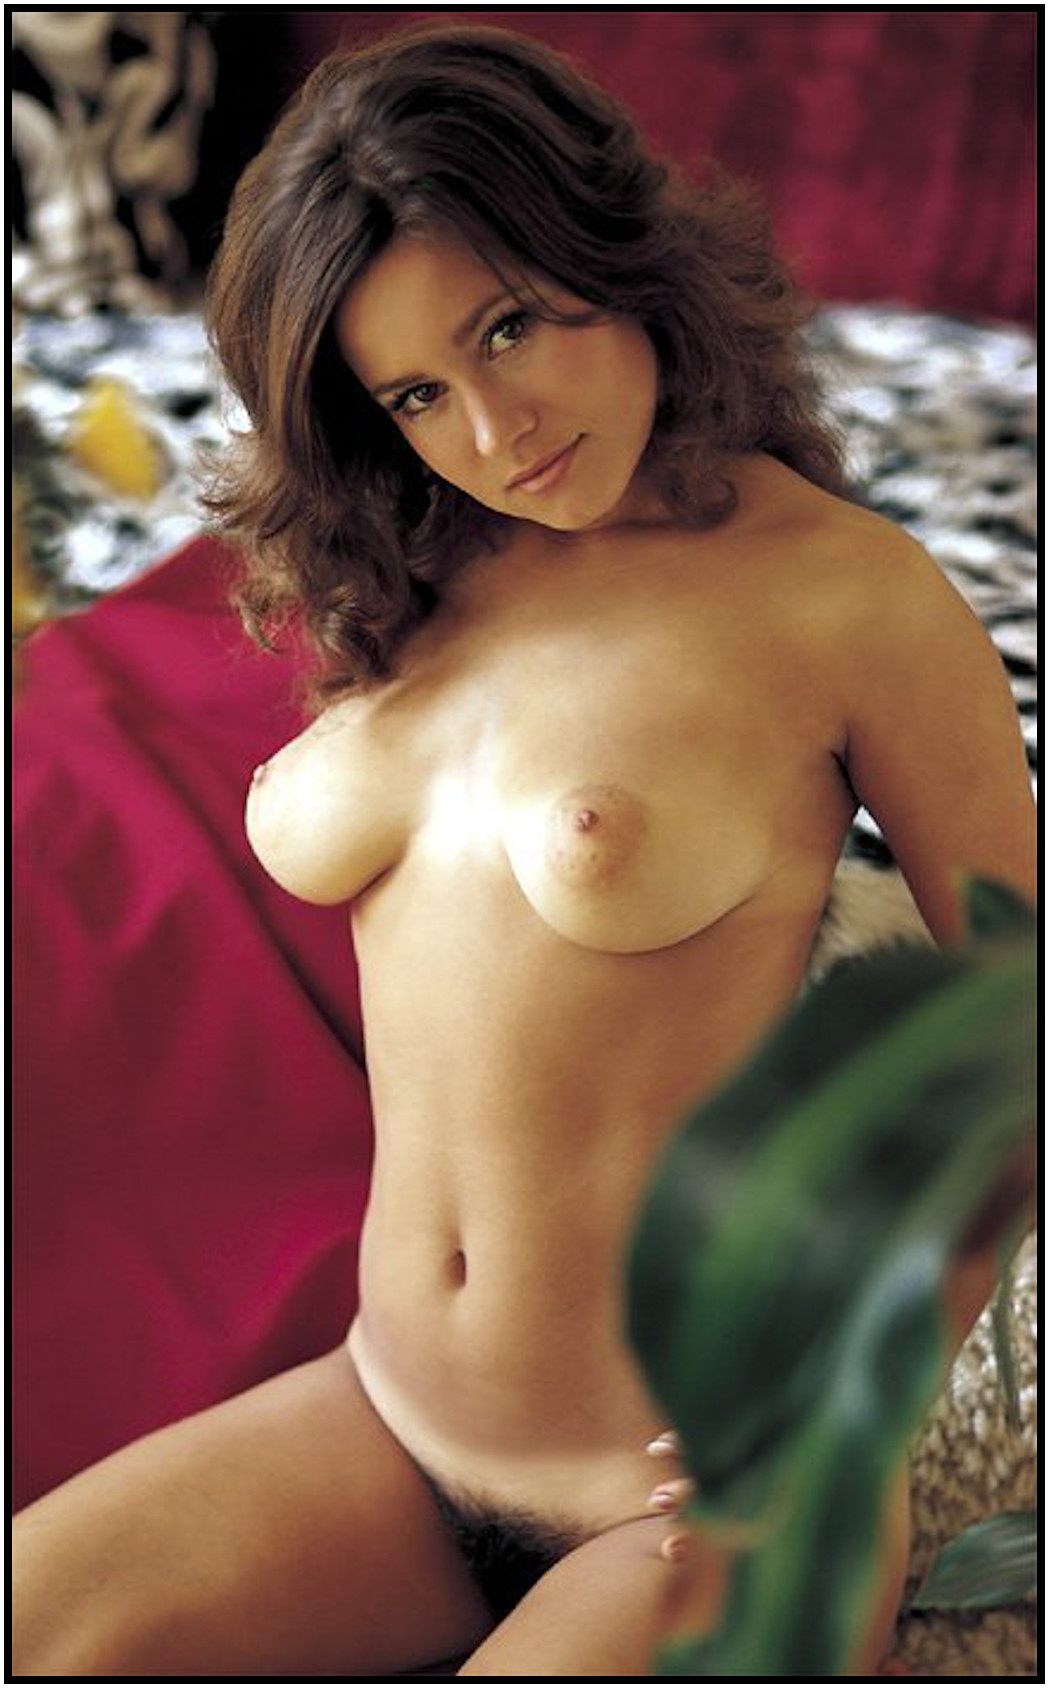 Necessary words... linda summers playmate sorry, this